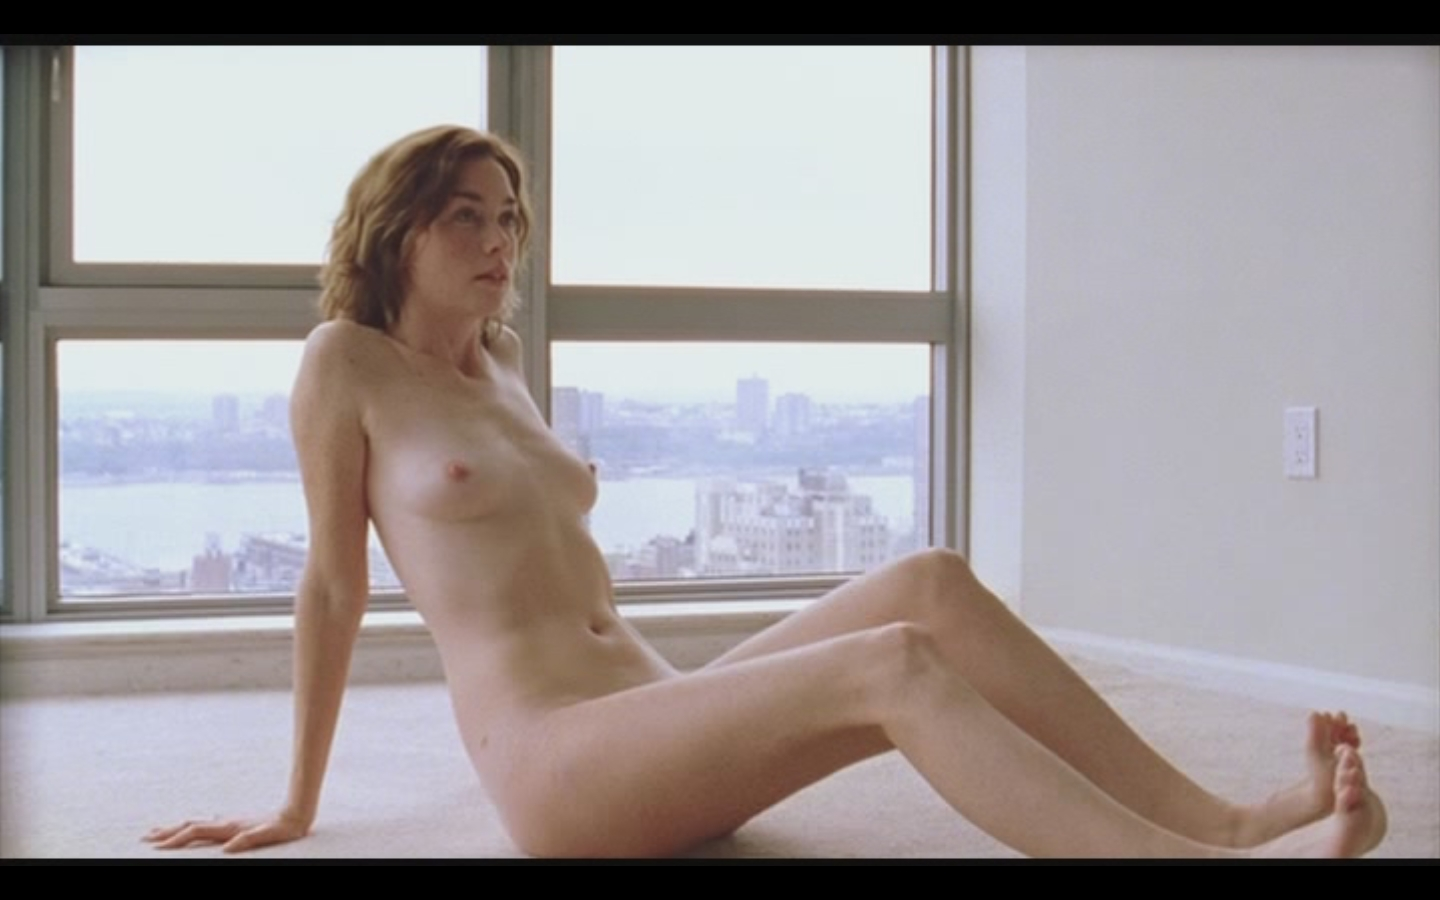 Julianne Nicholson Feet - Flannel Pajamas (2006)